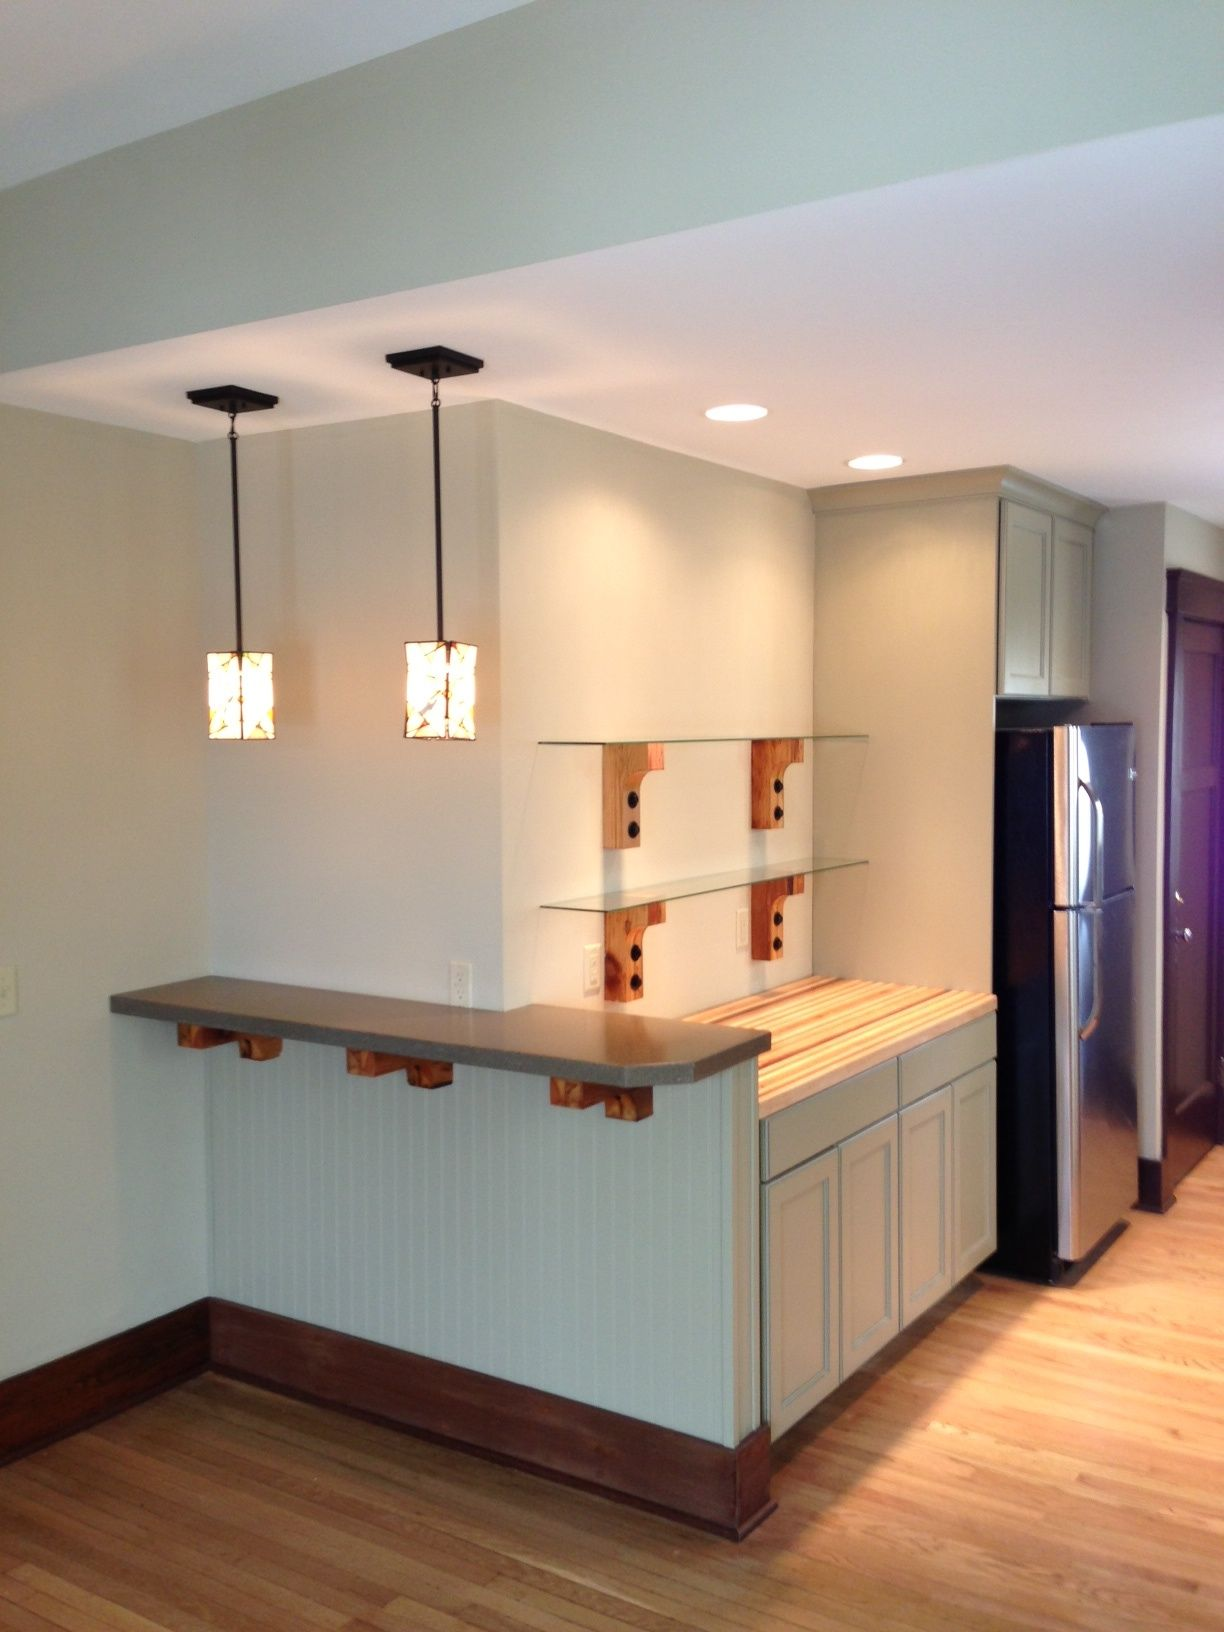 Expand Kitchen Into Dining Room To Open Up And Expand The Kitchen Into The Dining Room The Kitchen Dining Room Open Dining Room Open Kitchen